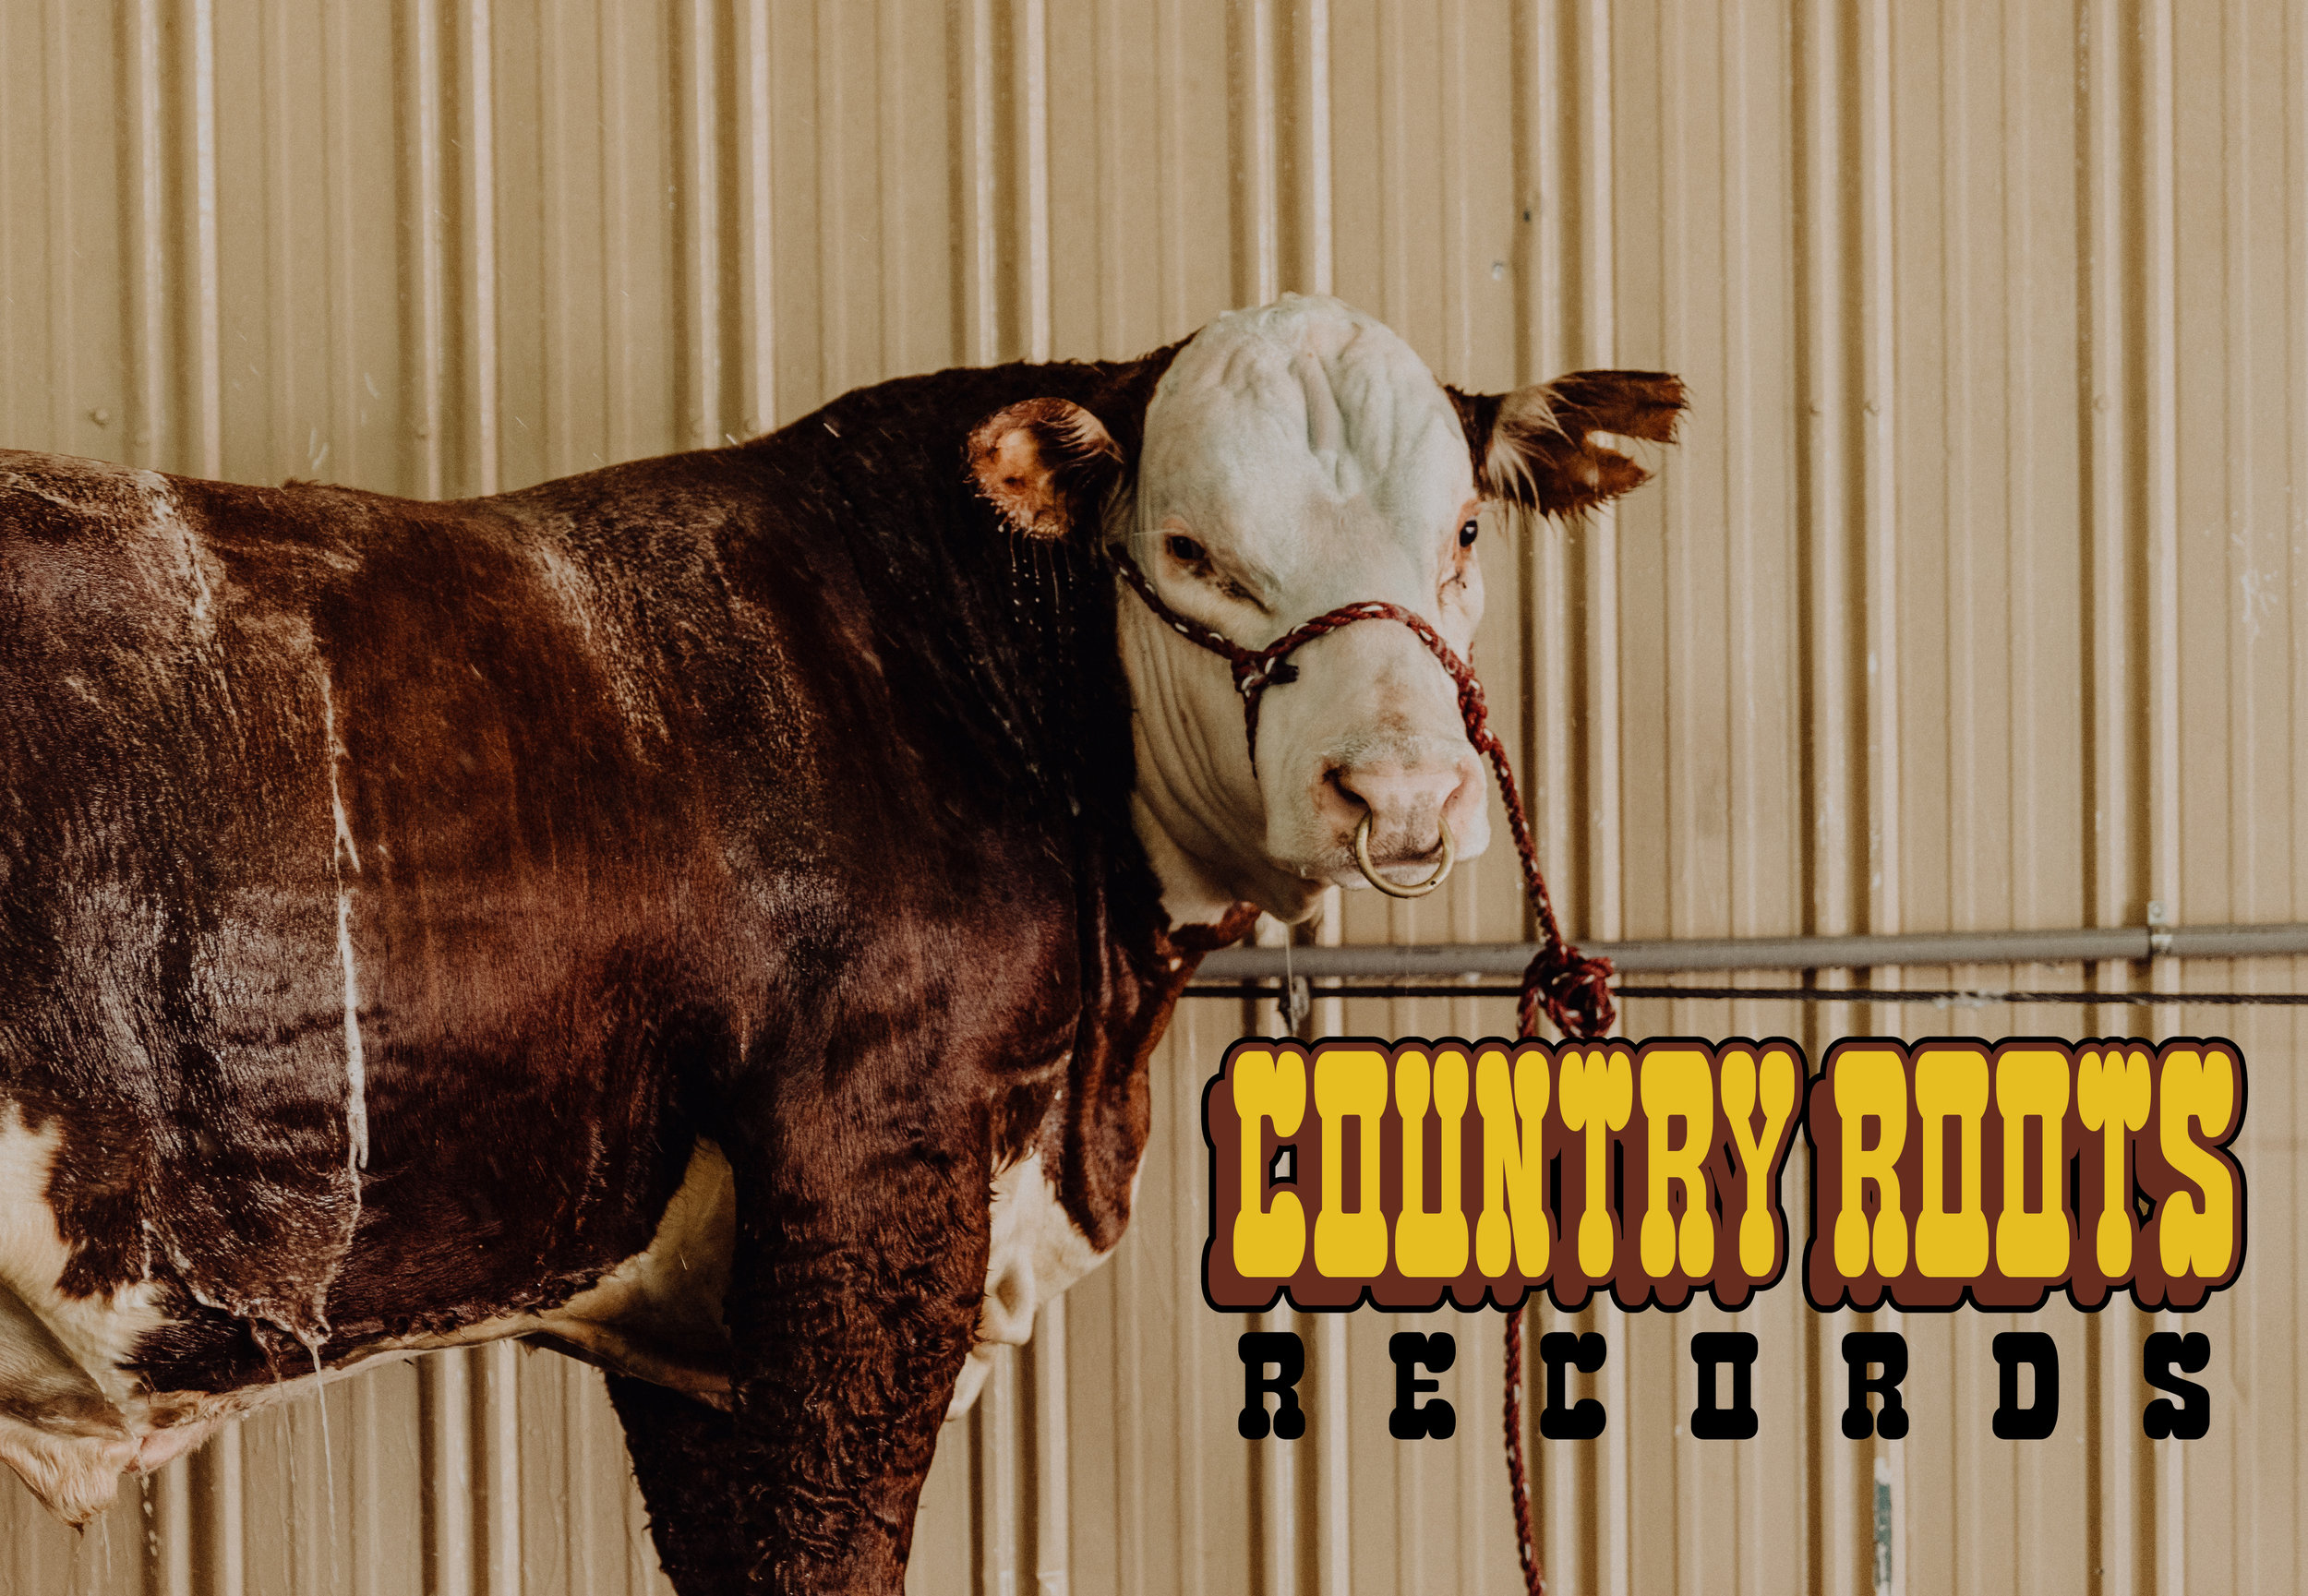 COUNTRY ROOTS BULL featured image 2.jpg